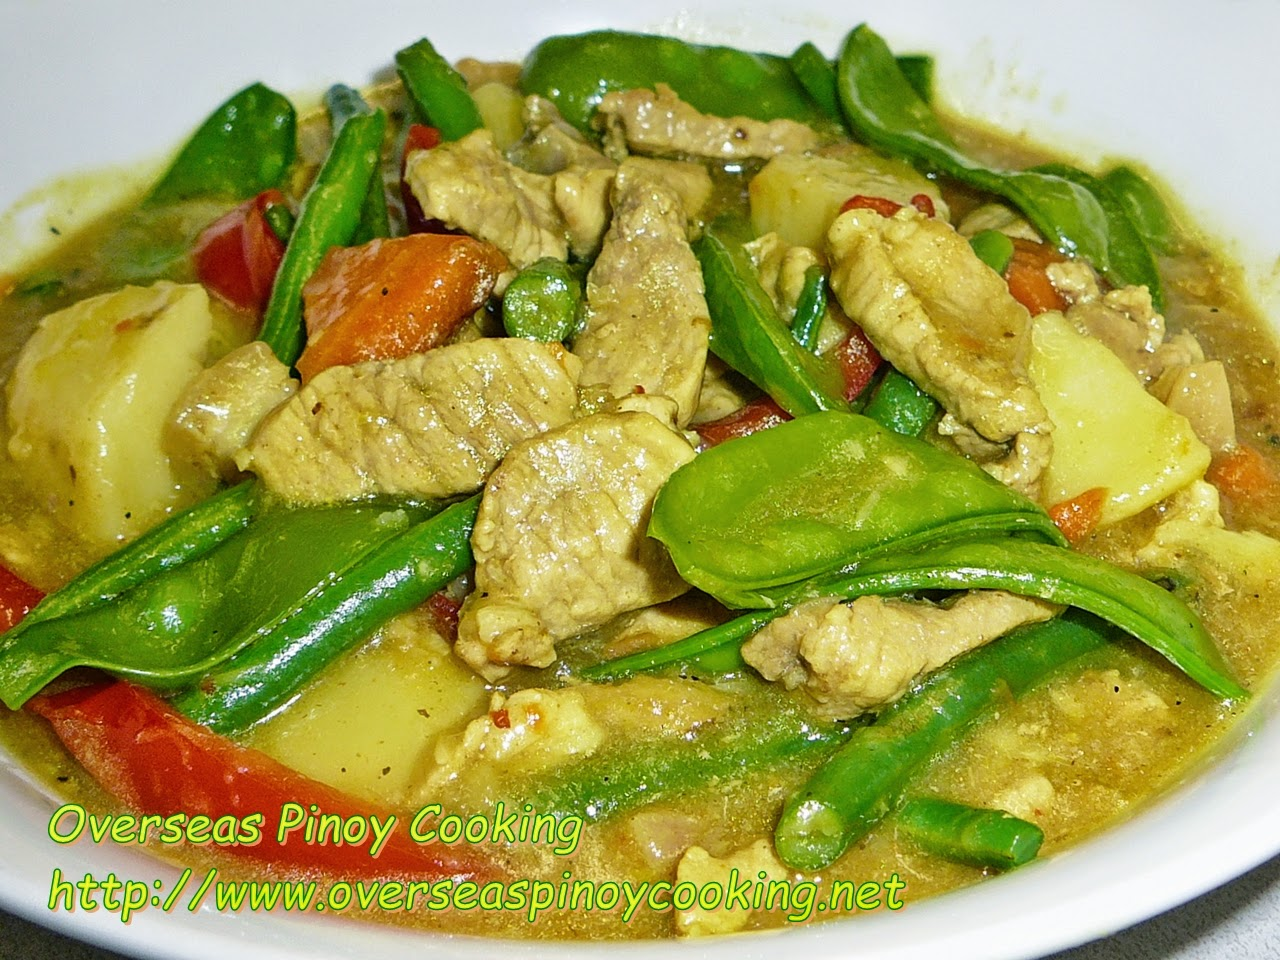 Overseas Pinoy Cooking Pinoy Pork Curry